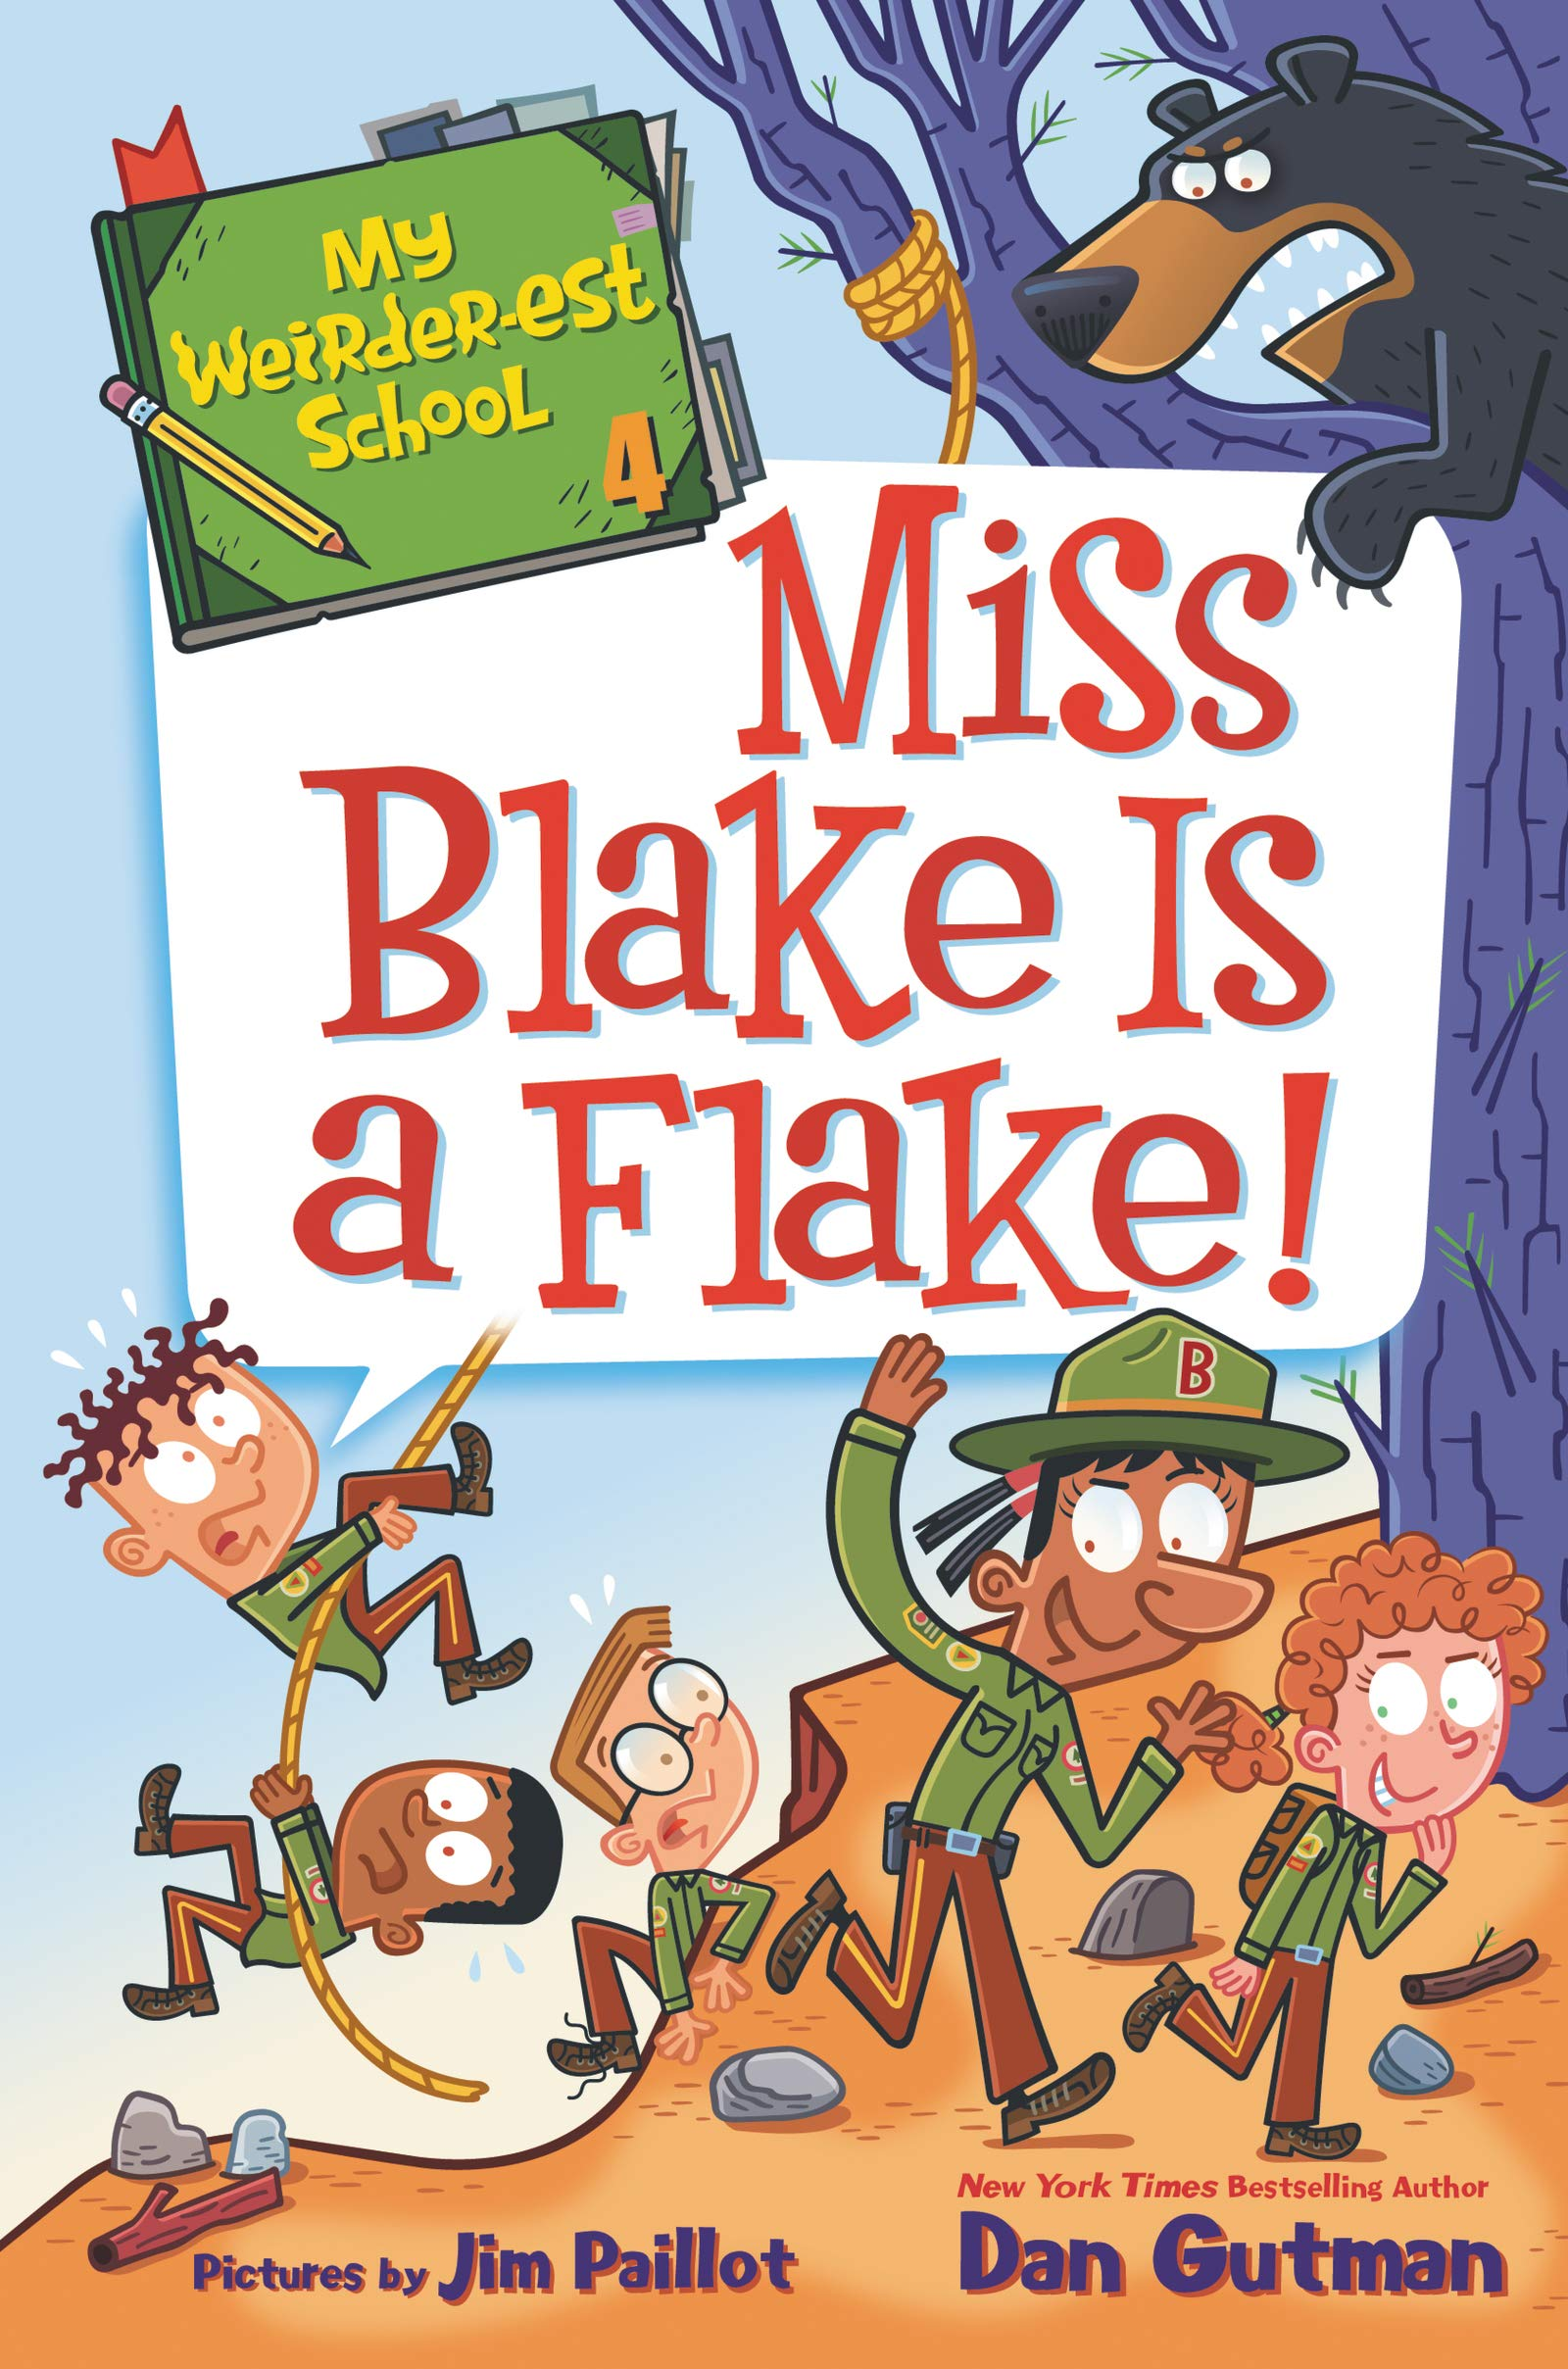 Image result for my weird school miss blake